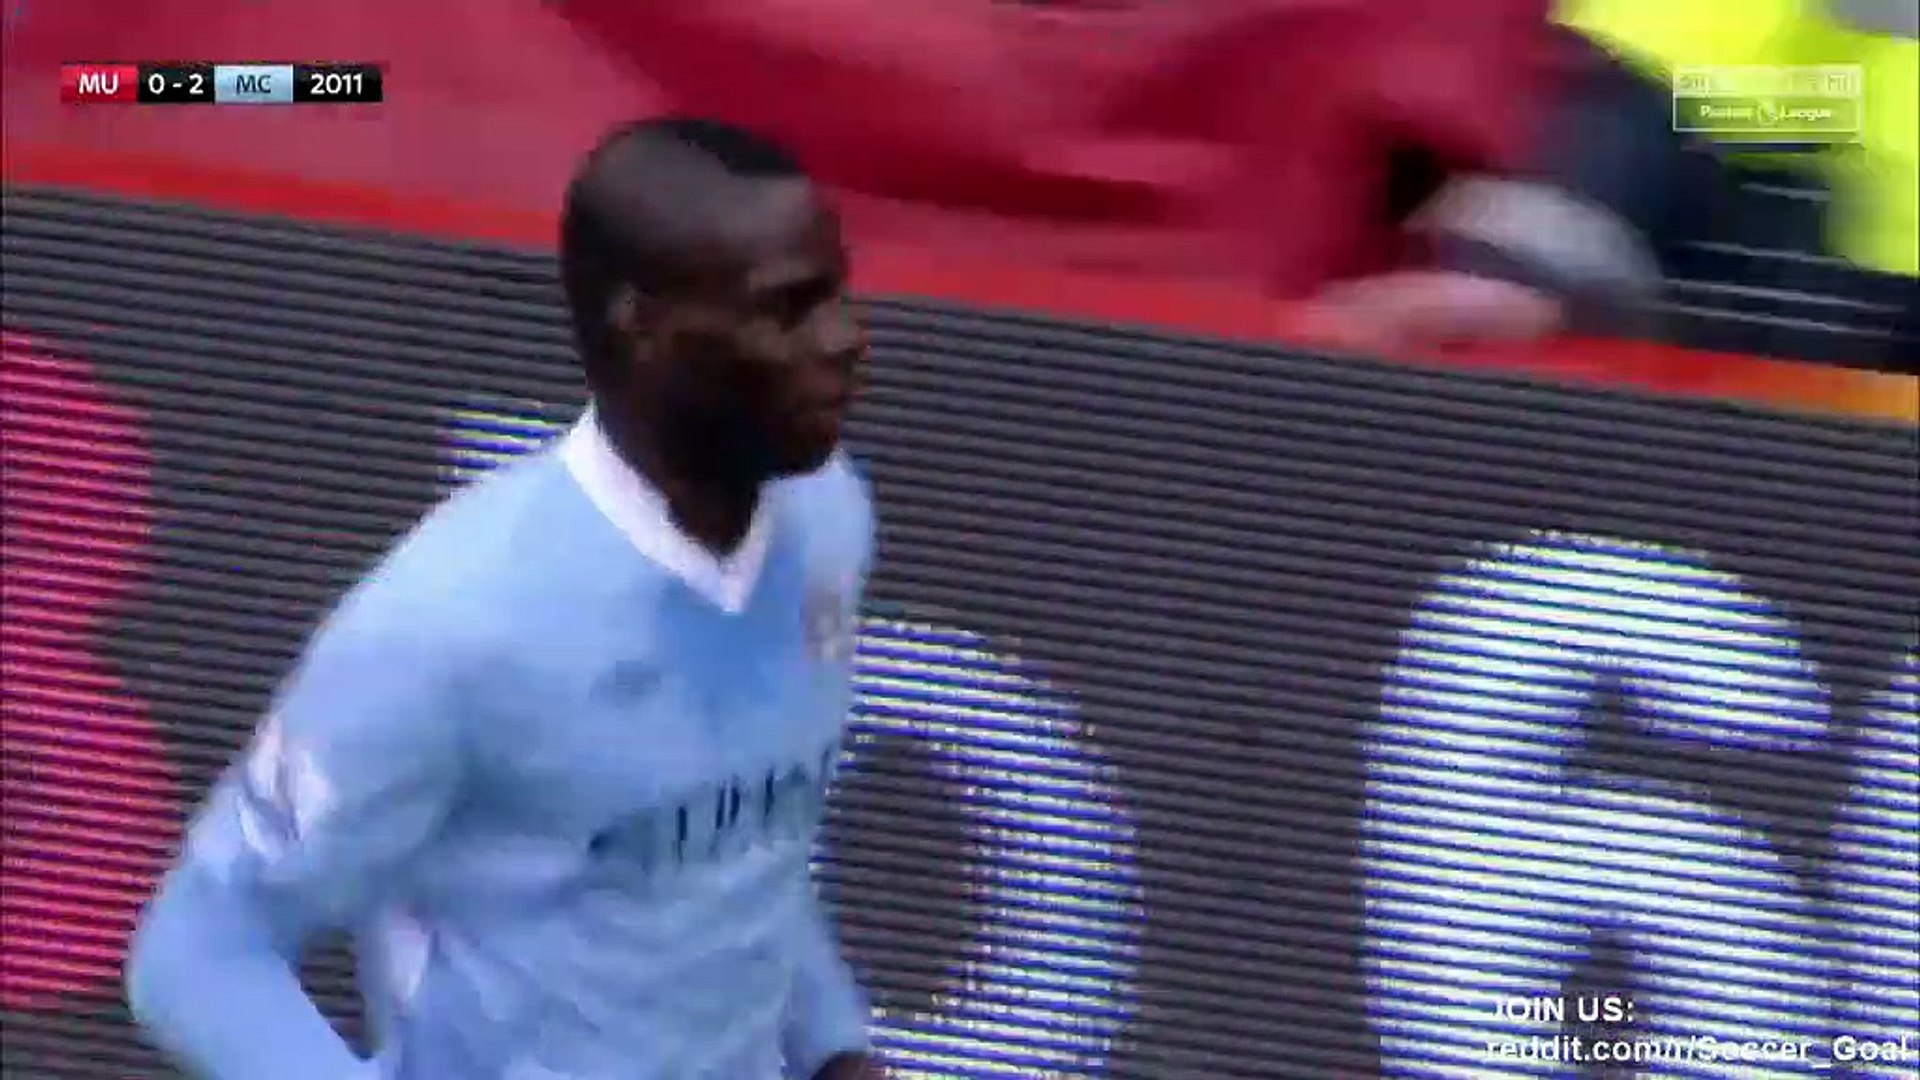 Manchester United 1 - 6 Manchester City Full Highlights - 2011